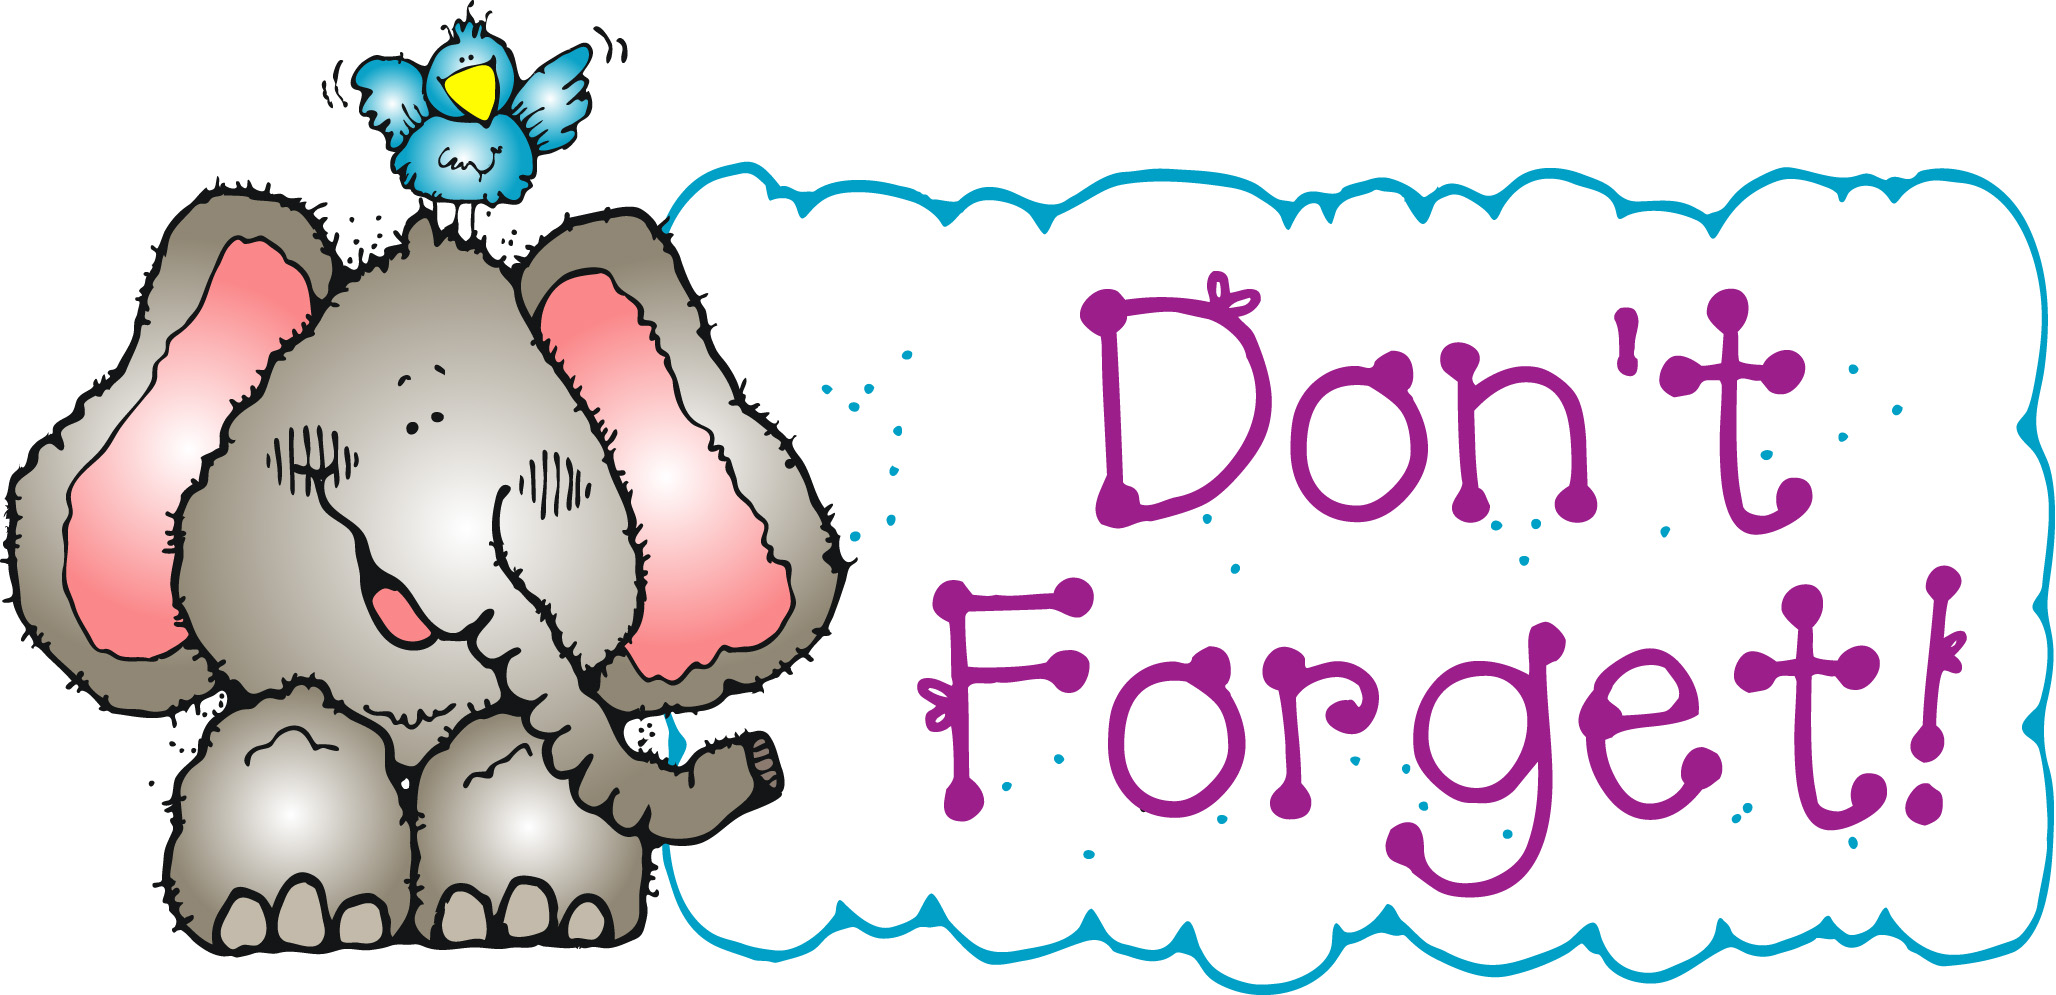 Free Cliparts Class Reminders, Download Free Clip Art, Free.